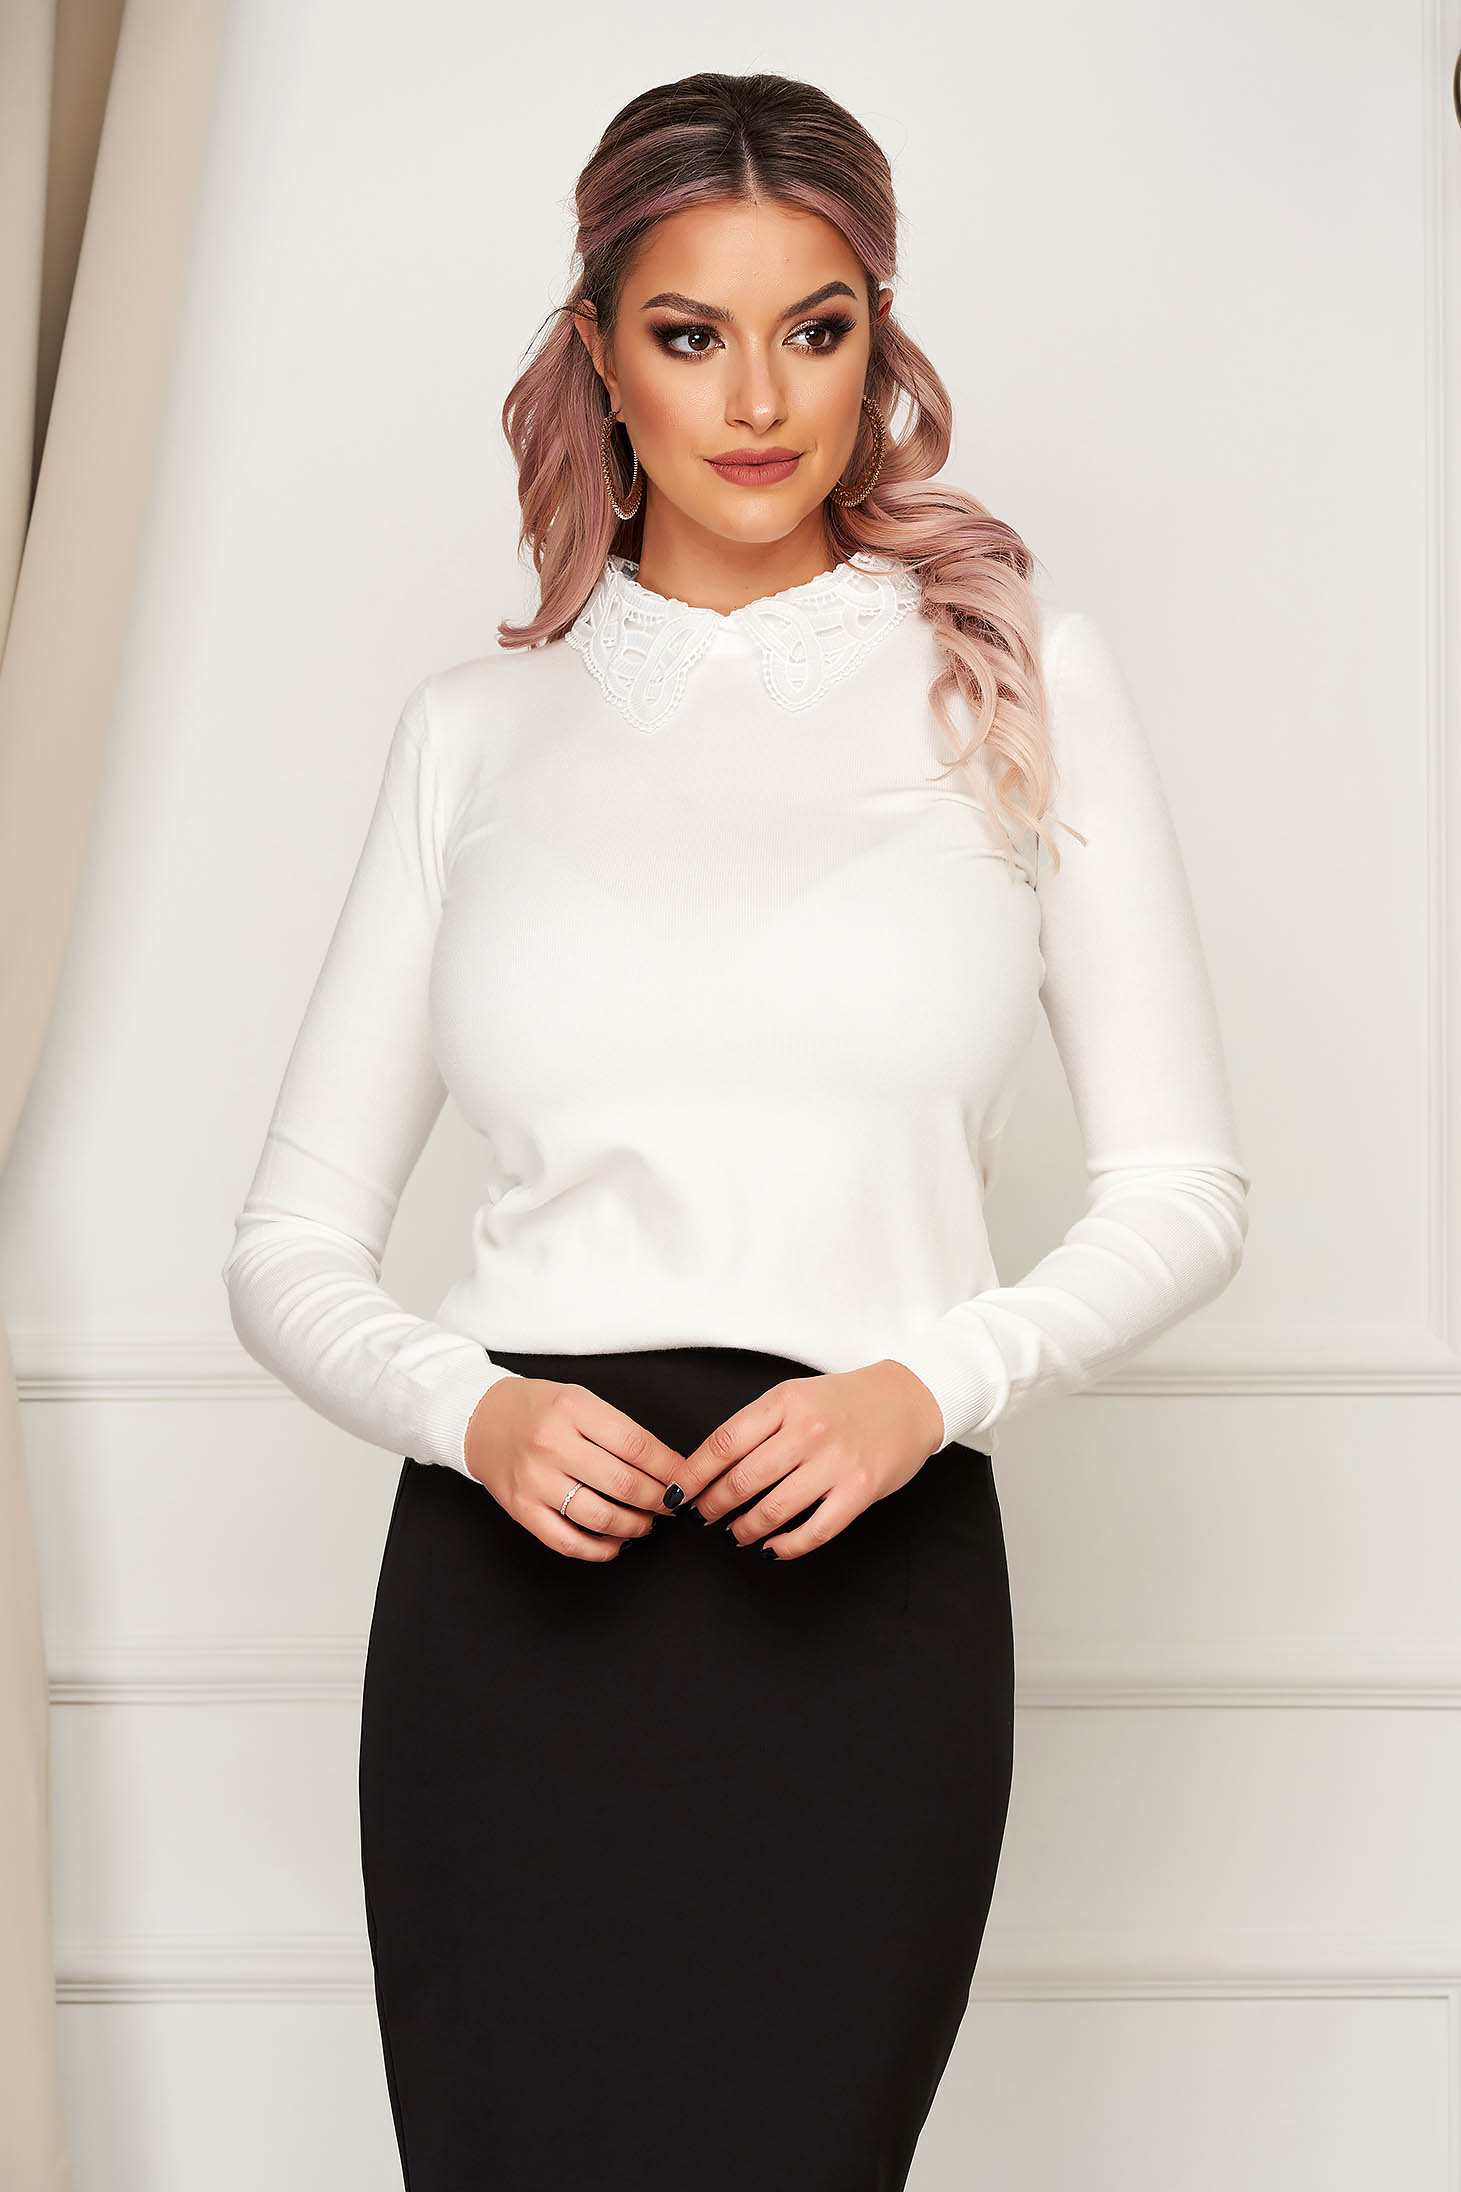 White sweater elegant short cut tented knitted